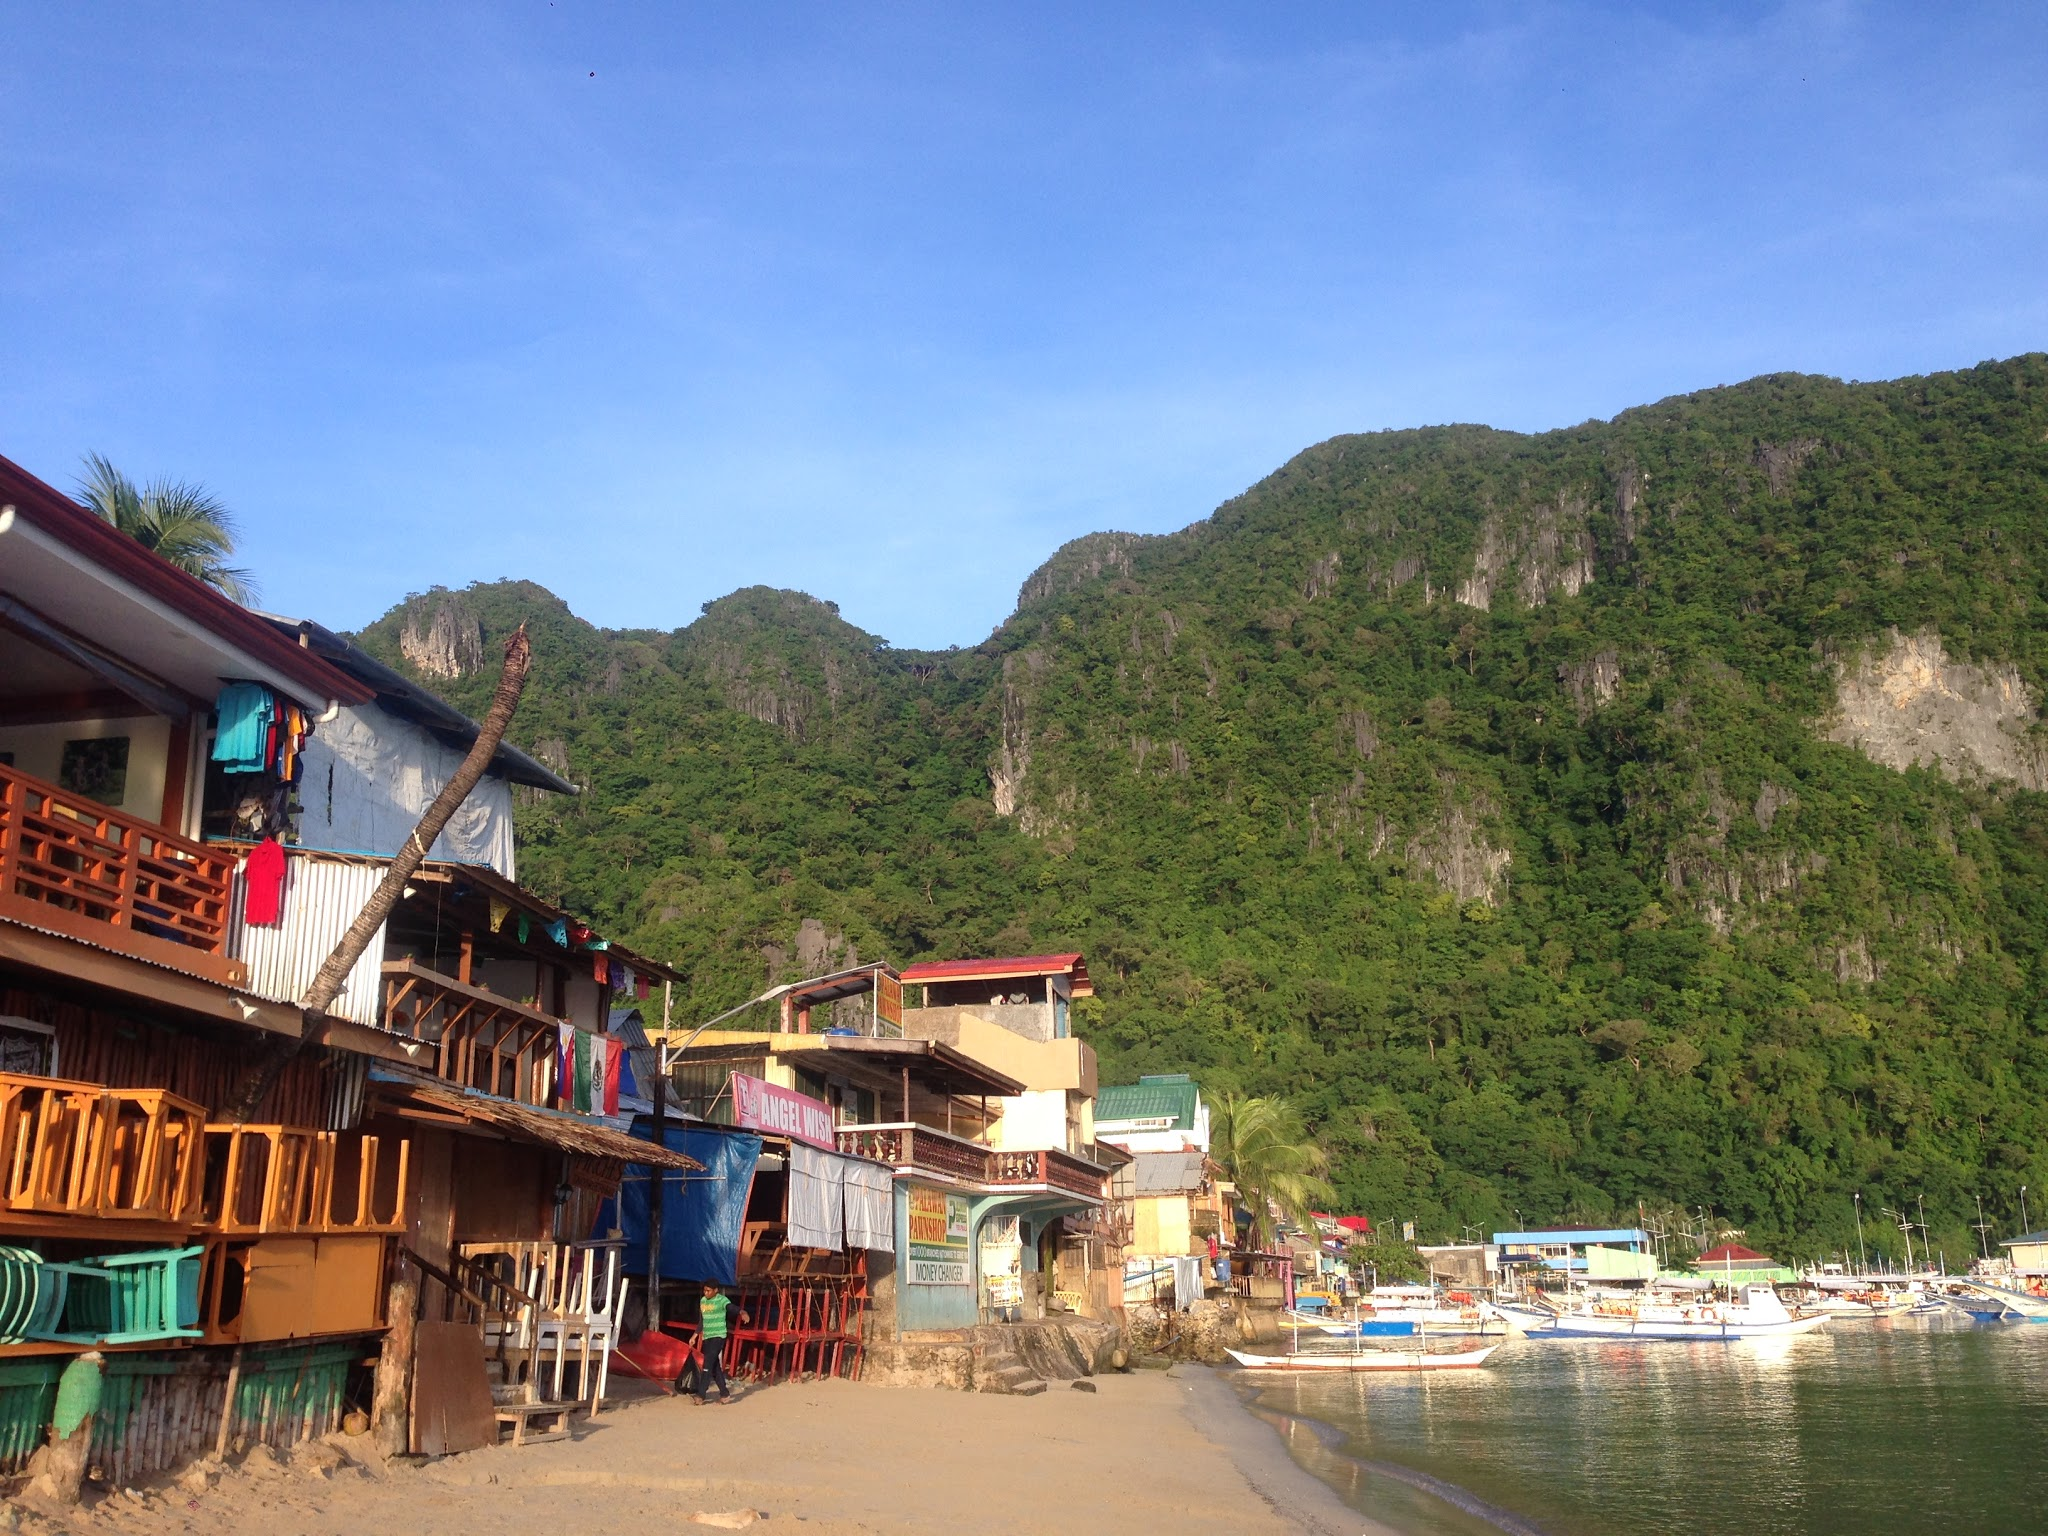 The shore at El Nido town